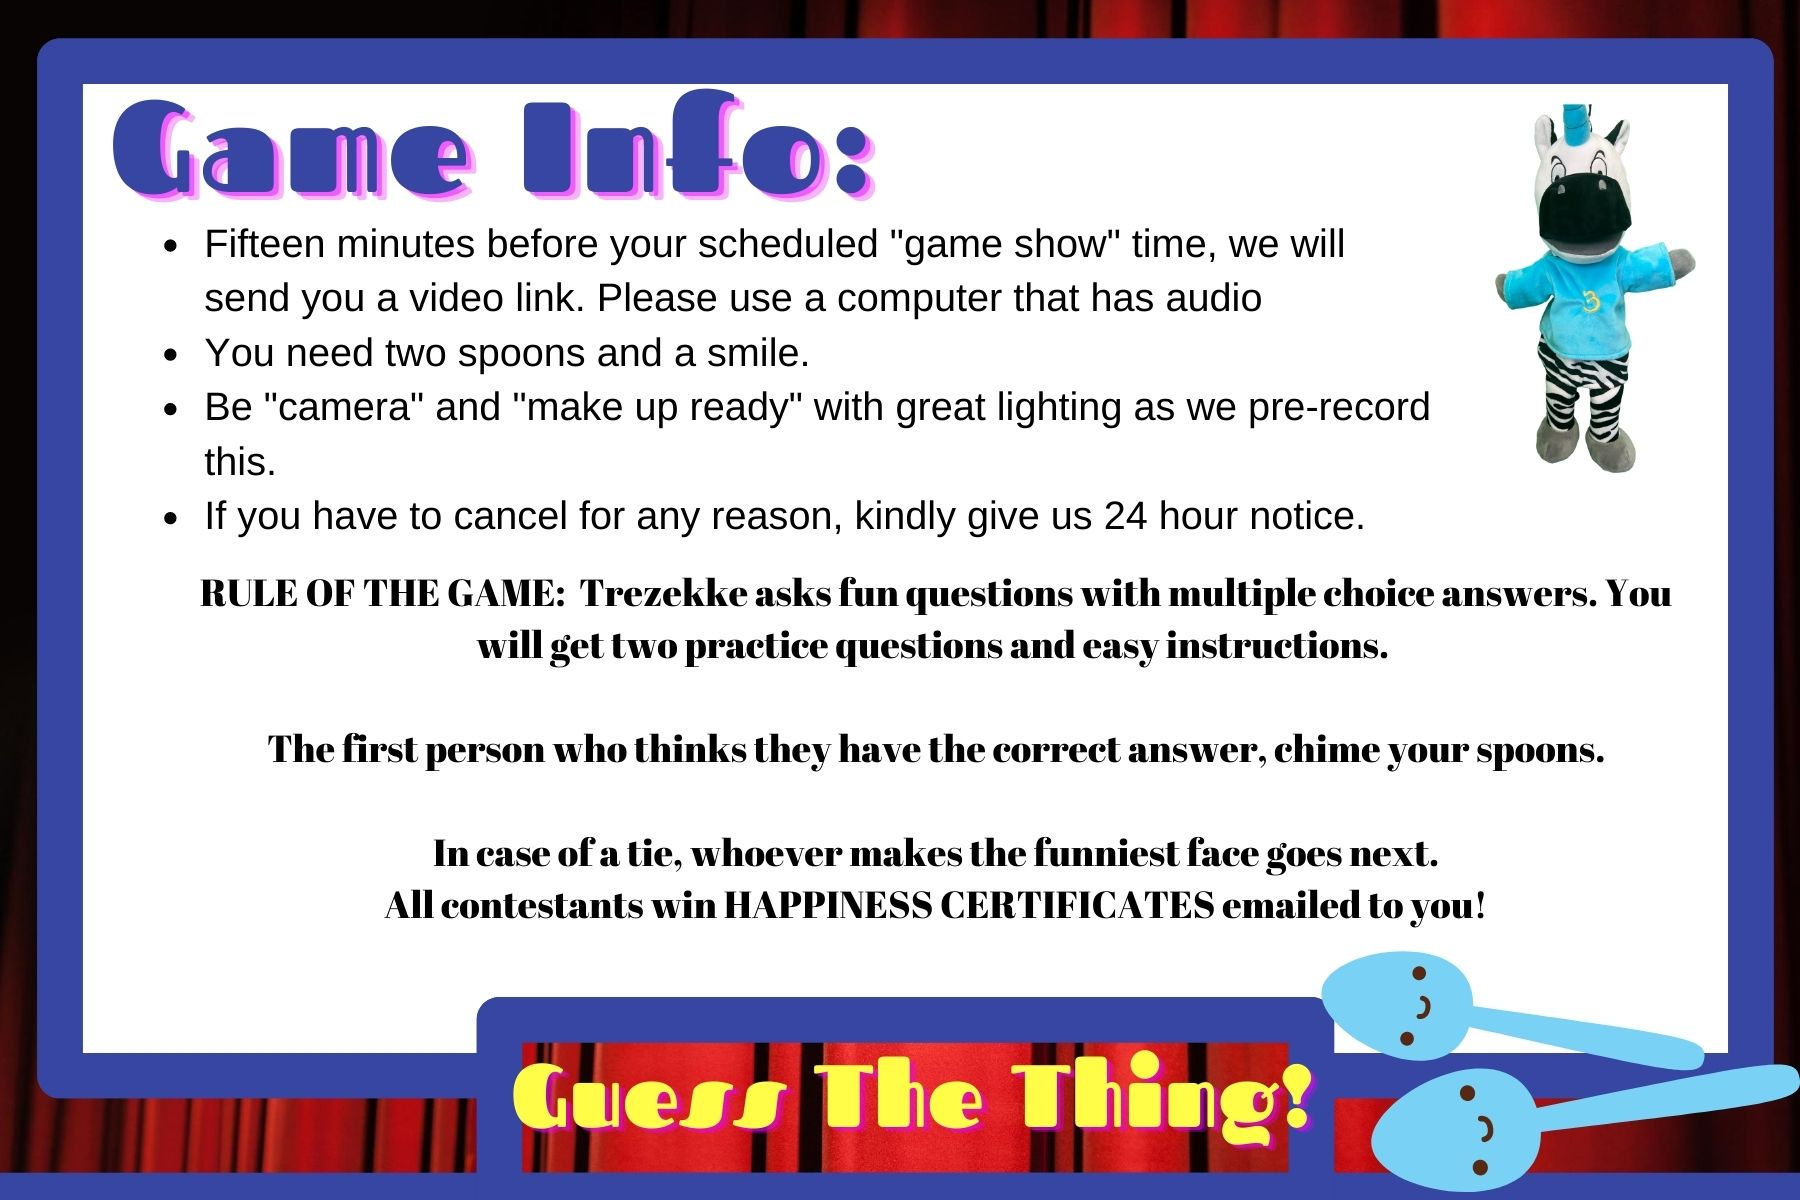 guess the thing game show for kids